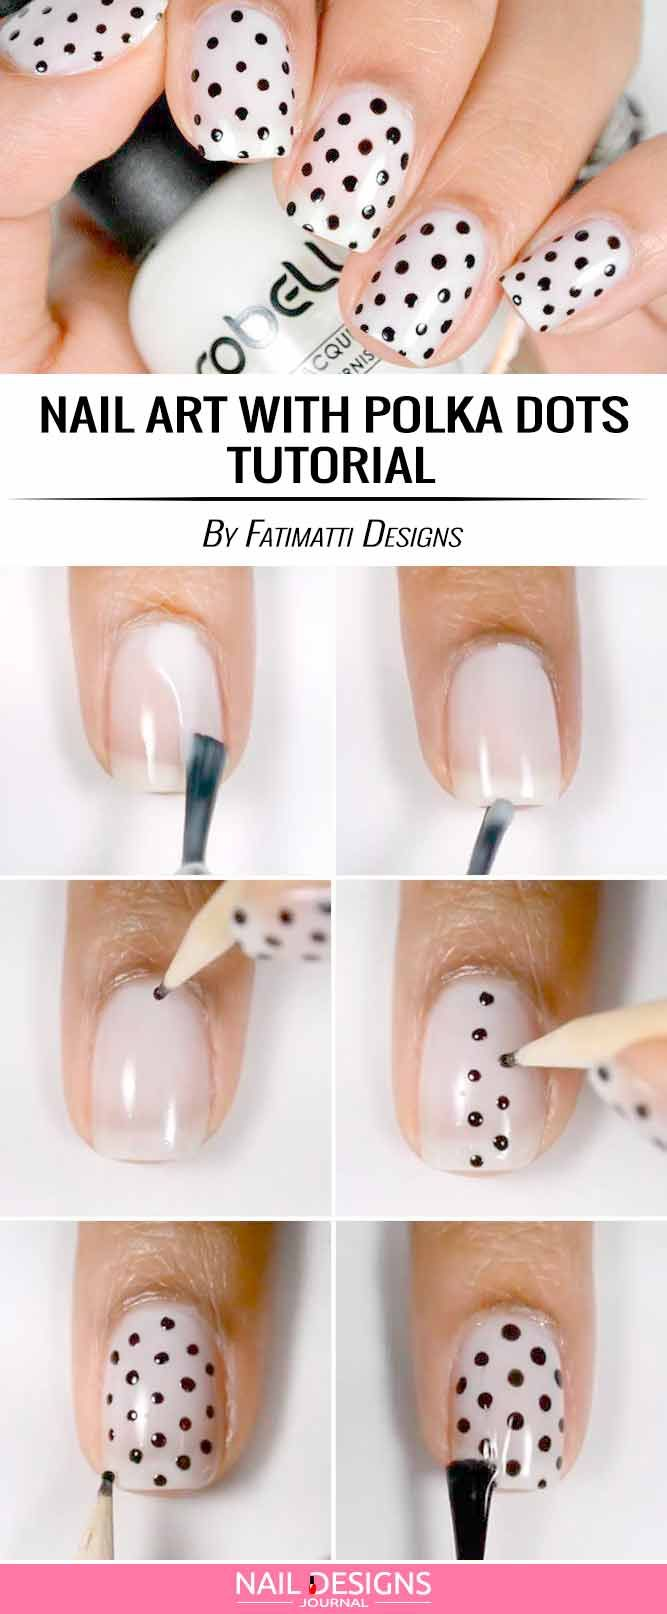 9 Super Easy Nail Designs You Should Know for 2017 summer | Easy ...